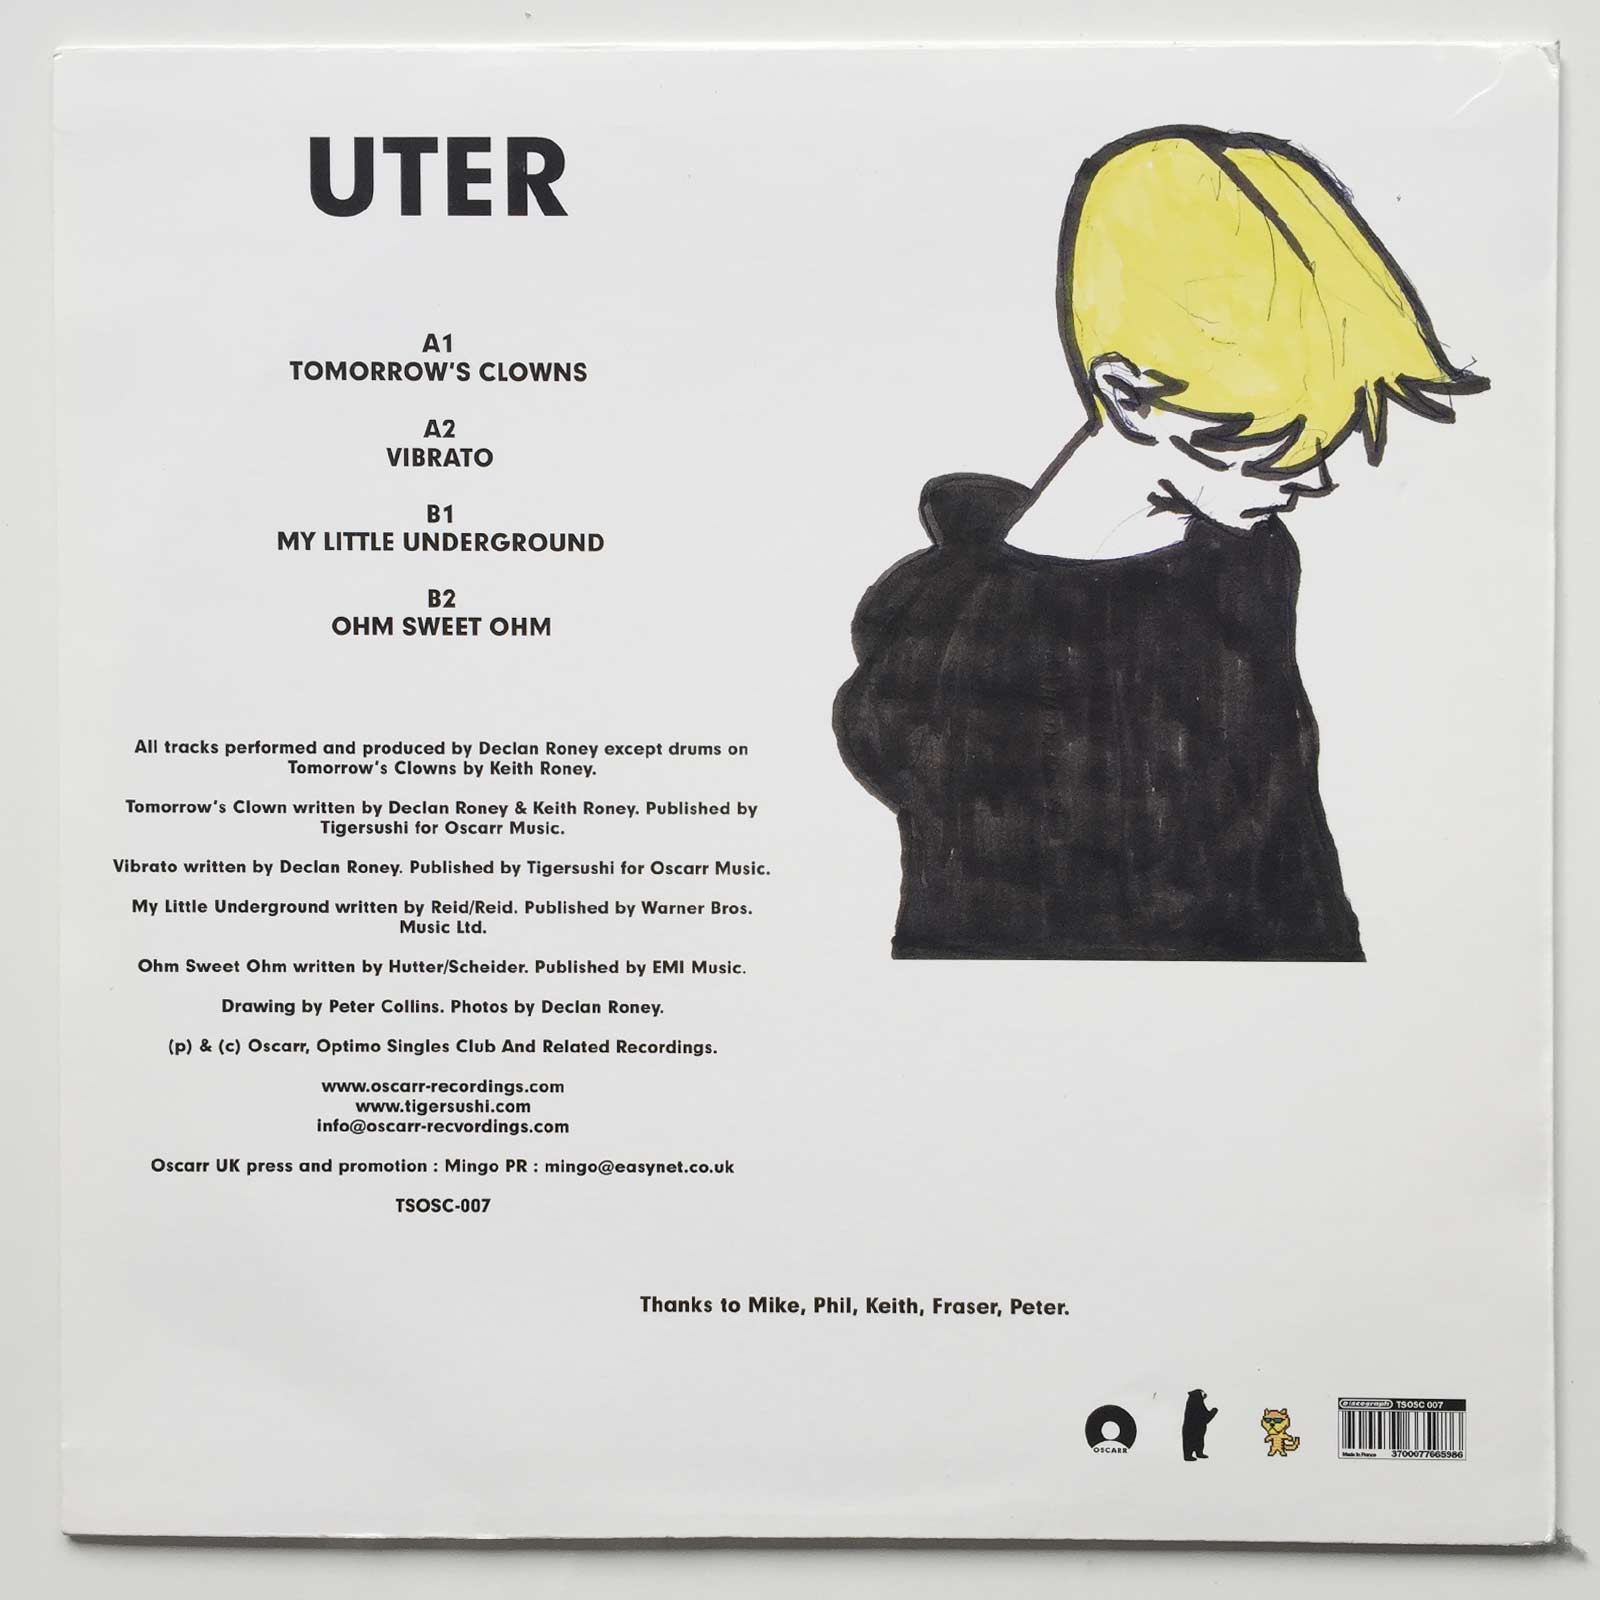 Uter: Tomorrow's Clowns back cover